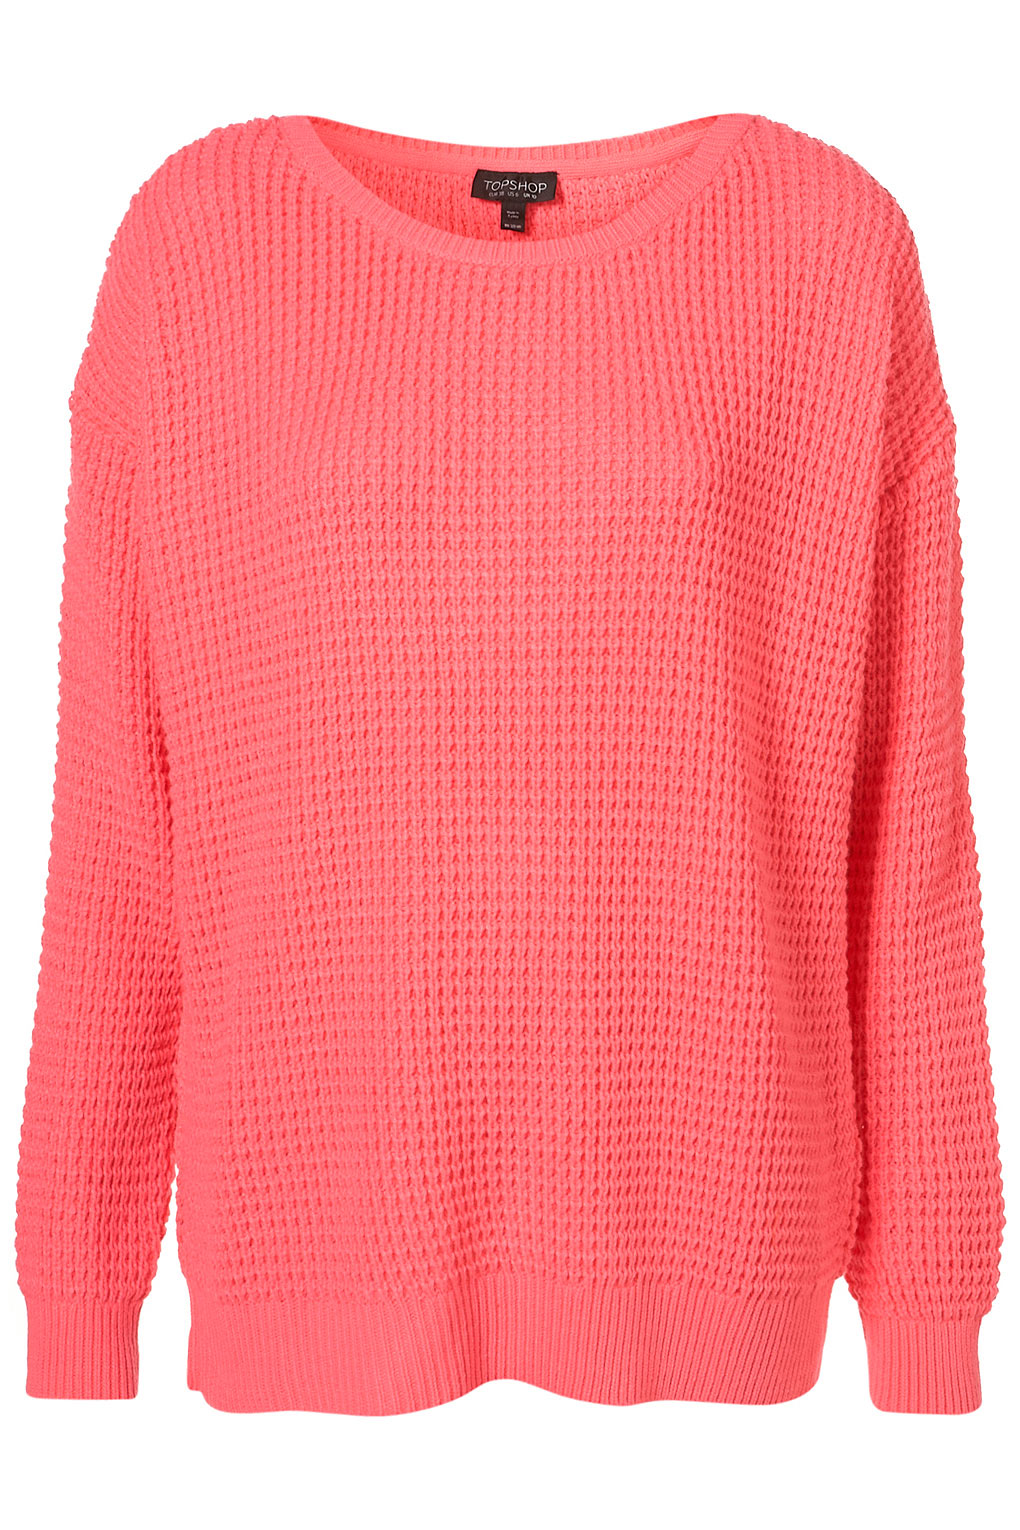 Deal of the day: Topshop Knitted Textured Stitch Fluro Jumper